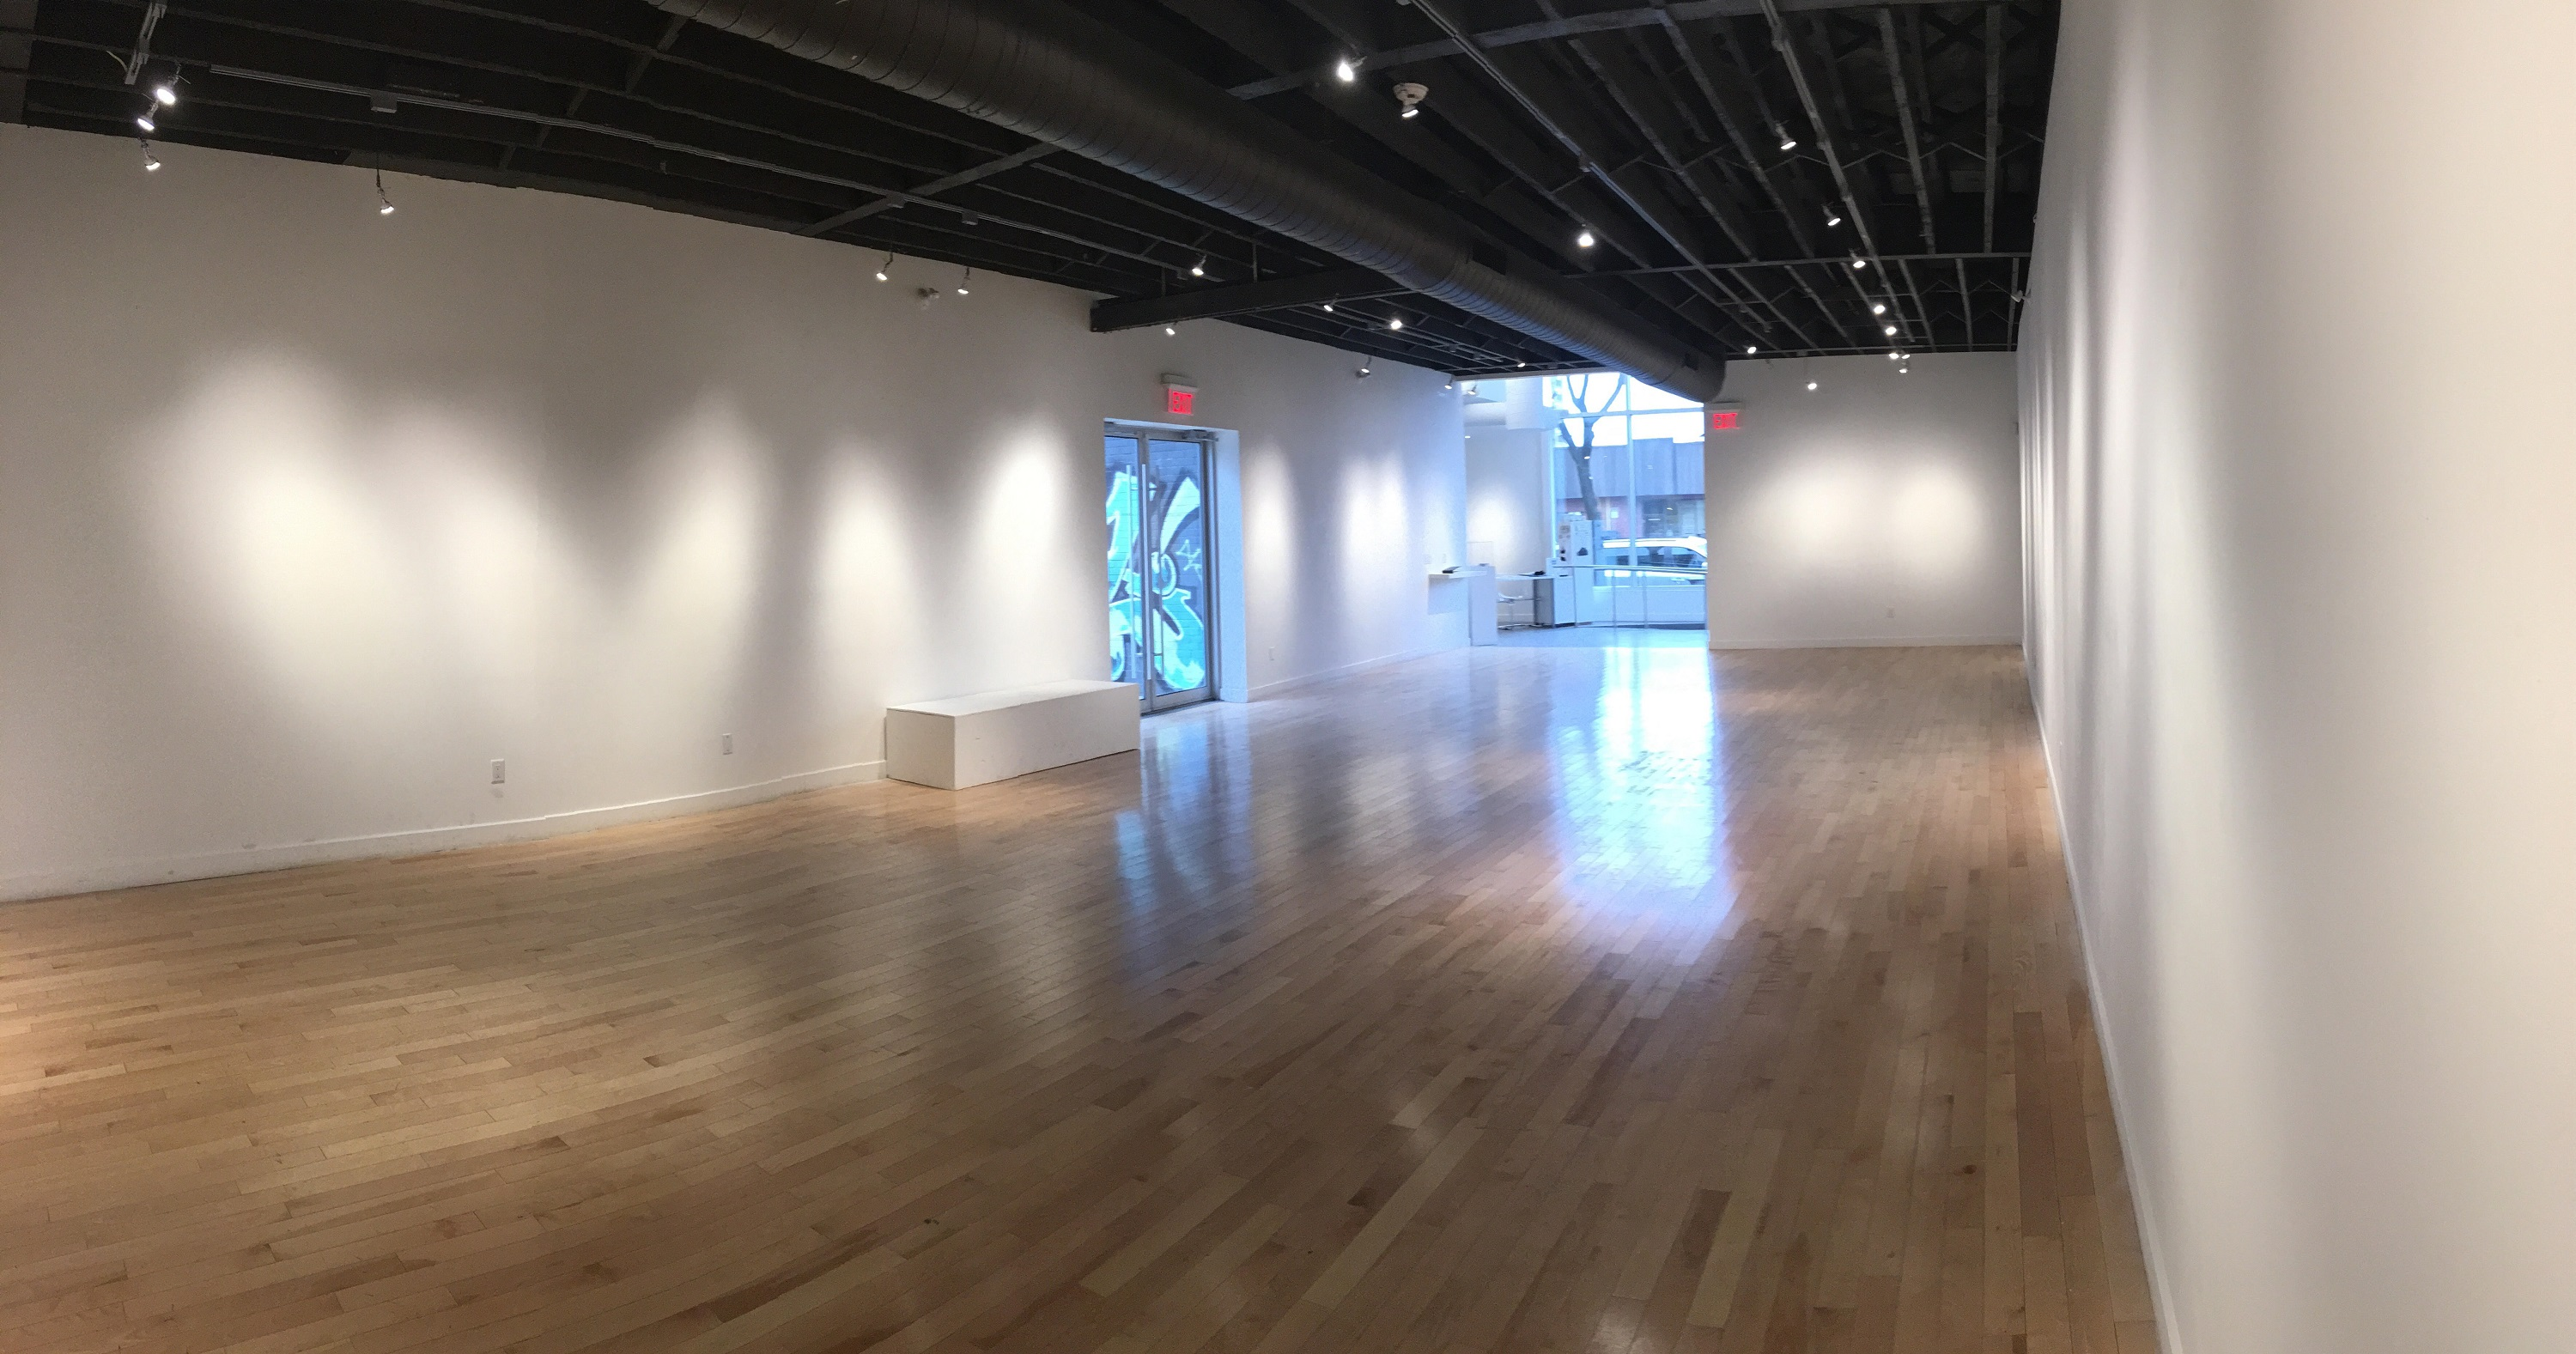 A wide-angle shot of the Cannon Gallery with bare walls. Light bounces off of the laminate floors, especially near the big windows at the front entrance of the building and the glass doorway leading to the courtyard.